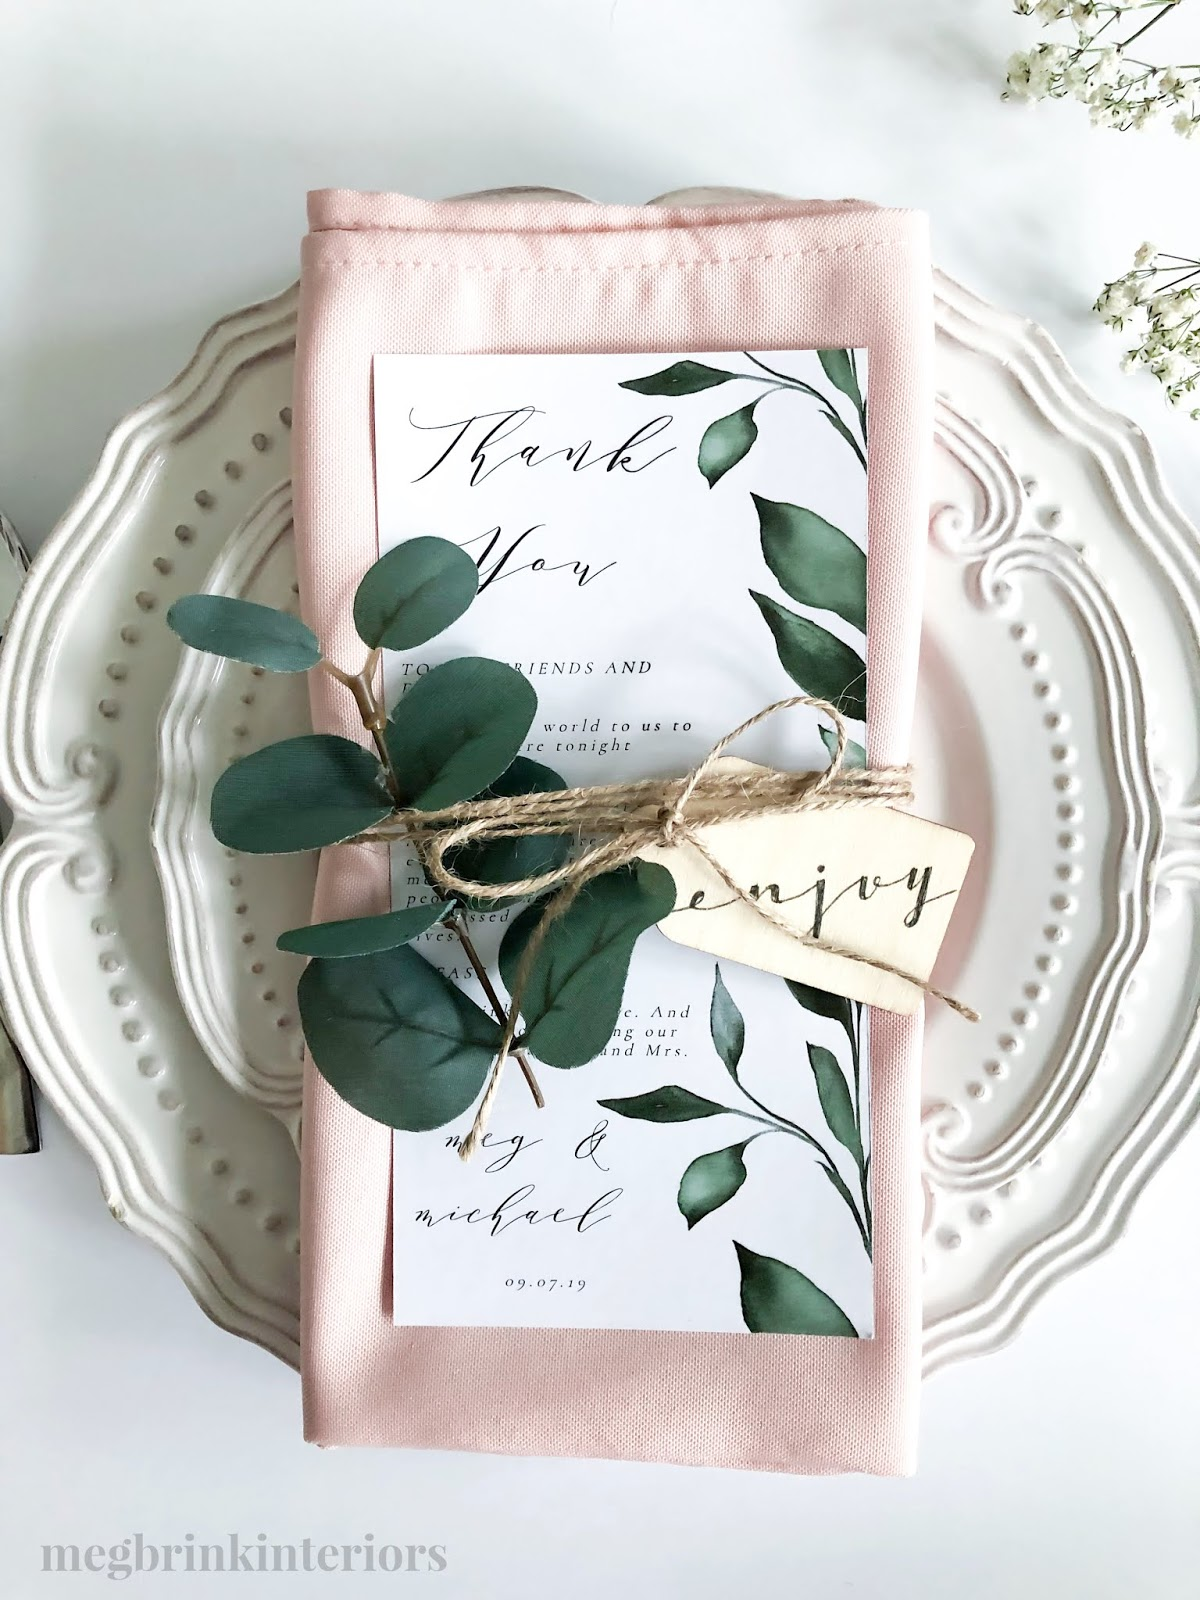 Blush pink cloth napkins with greenery, wooden tags and twine make the perfect wedding place setting!